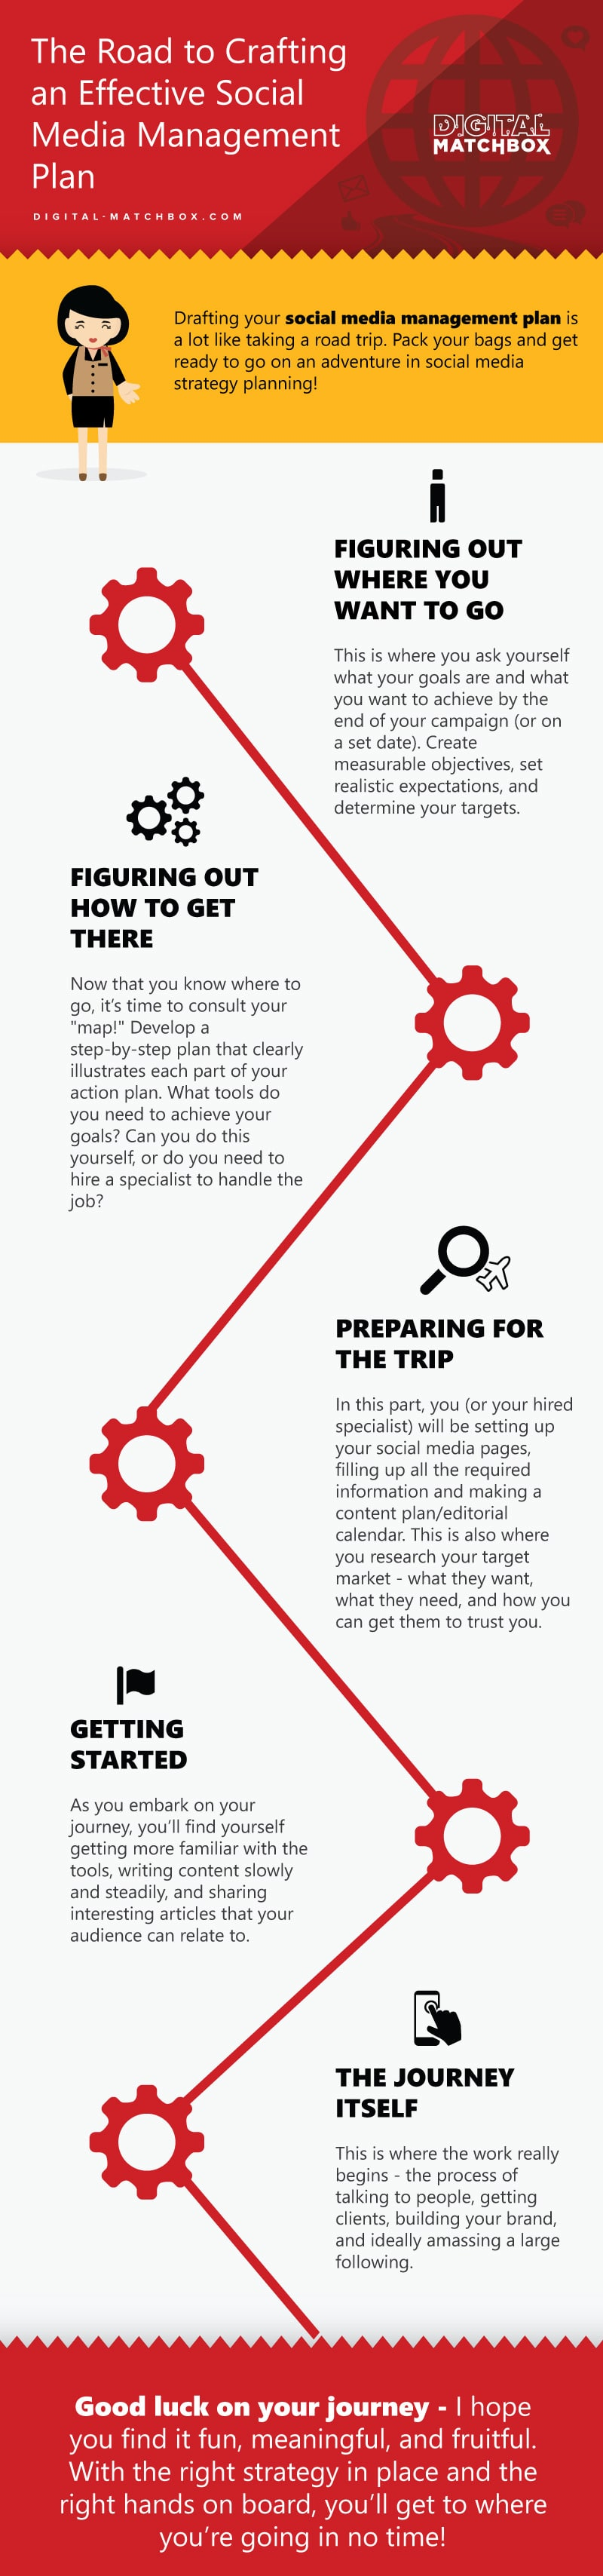 The Road to Crafting an Effective Social Media Management Plan